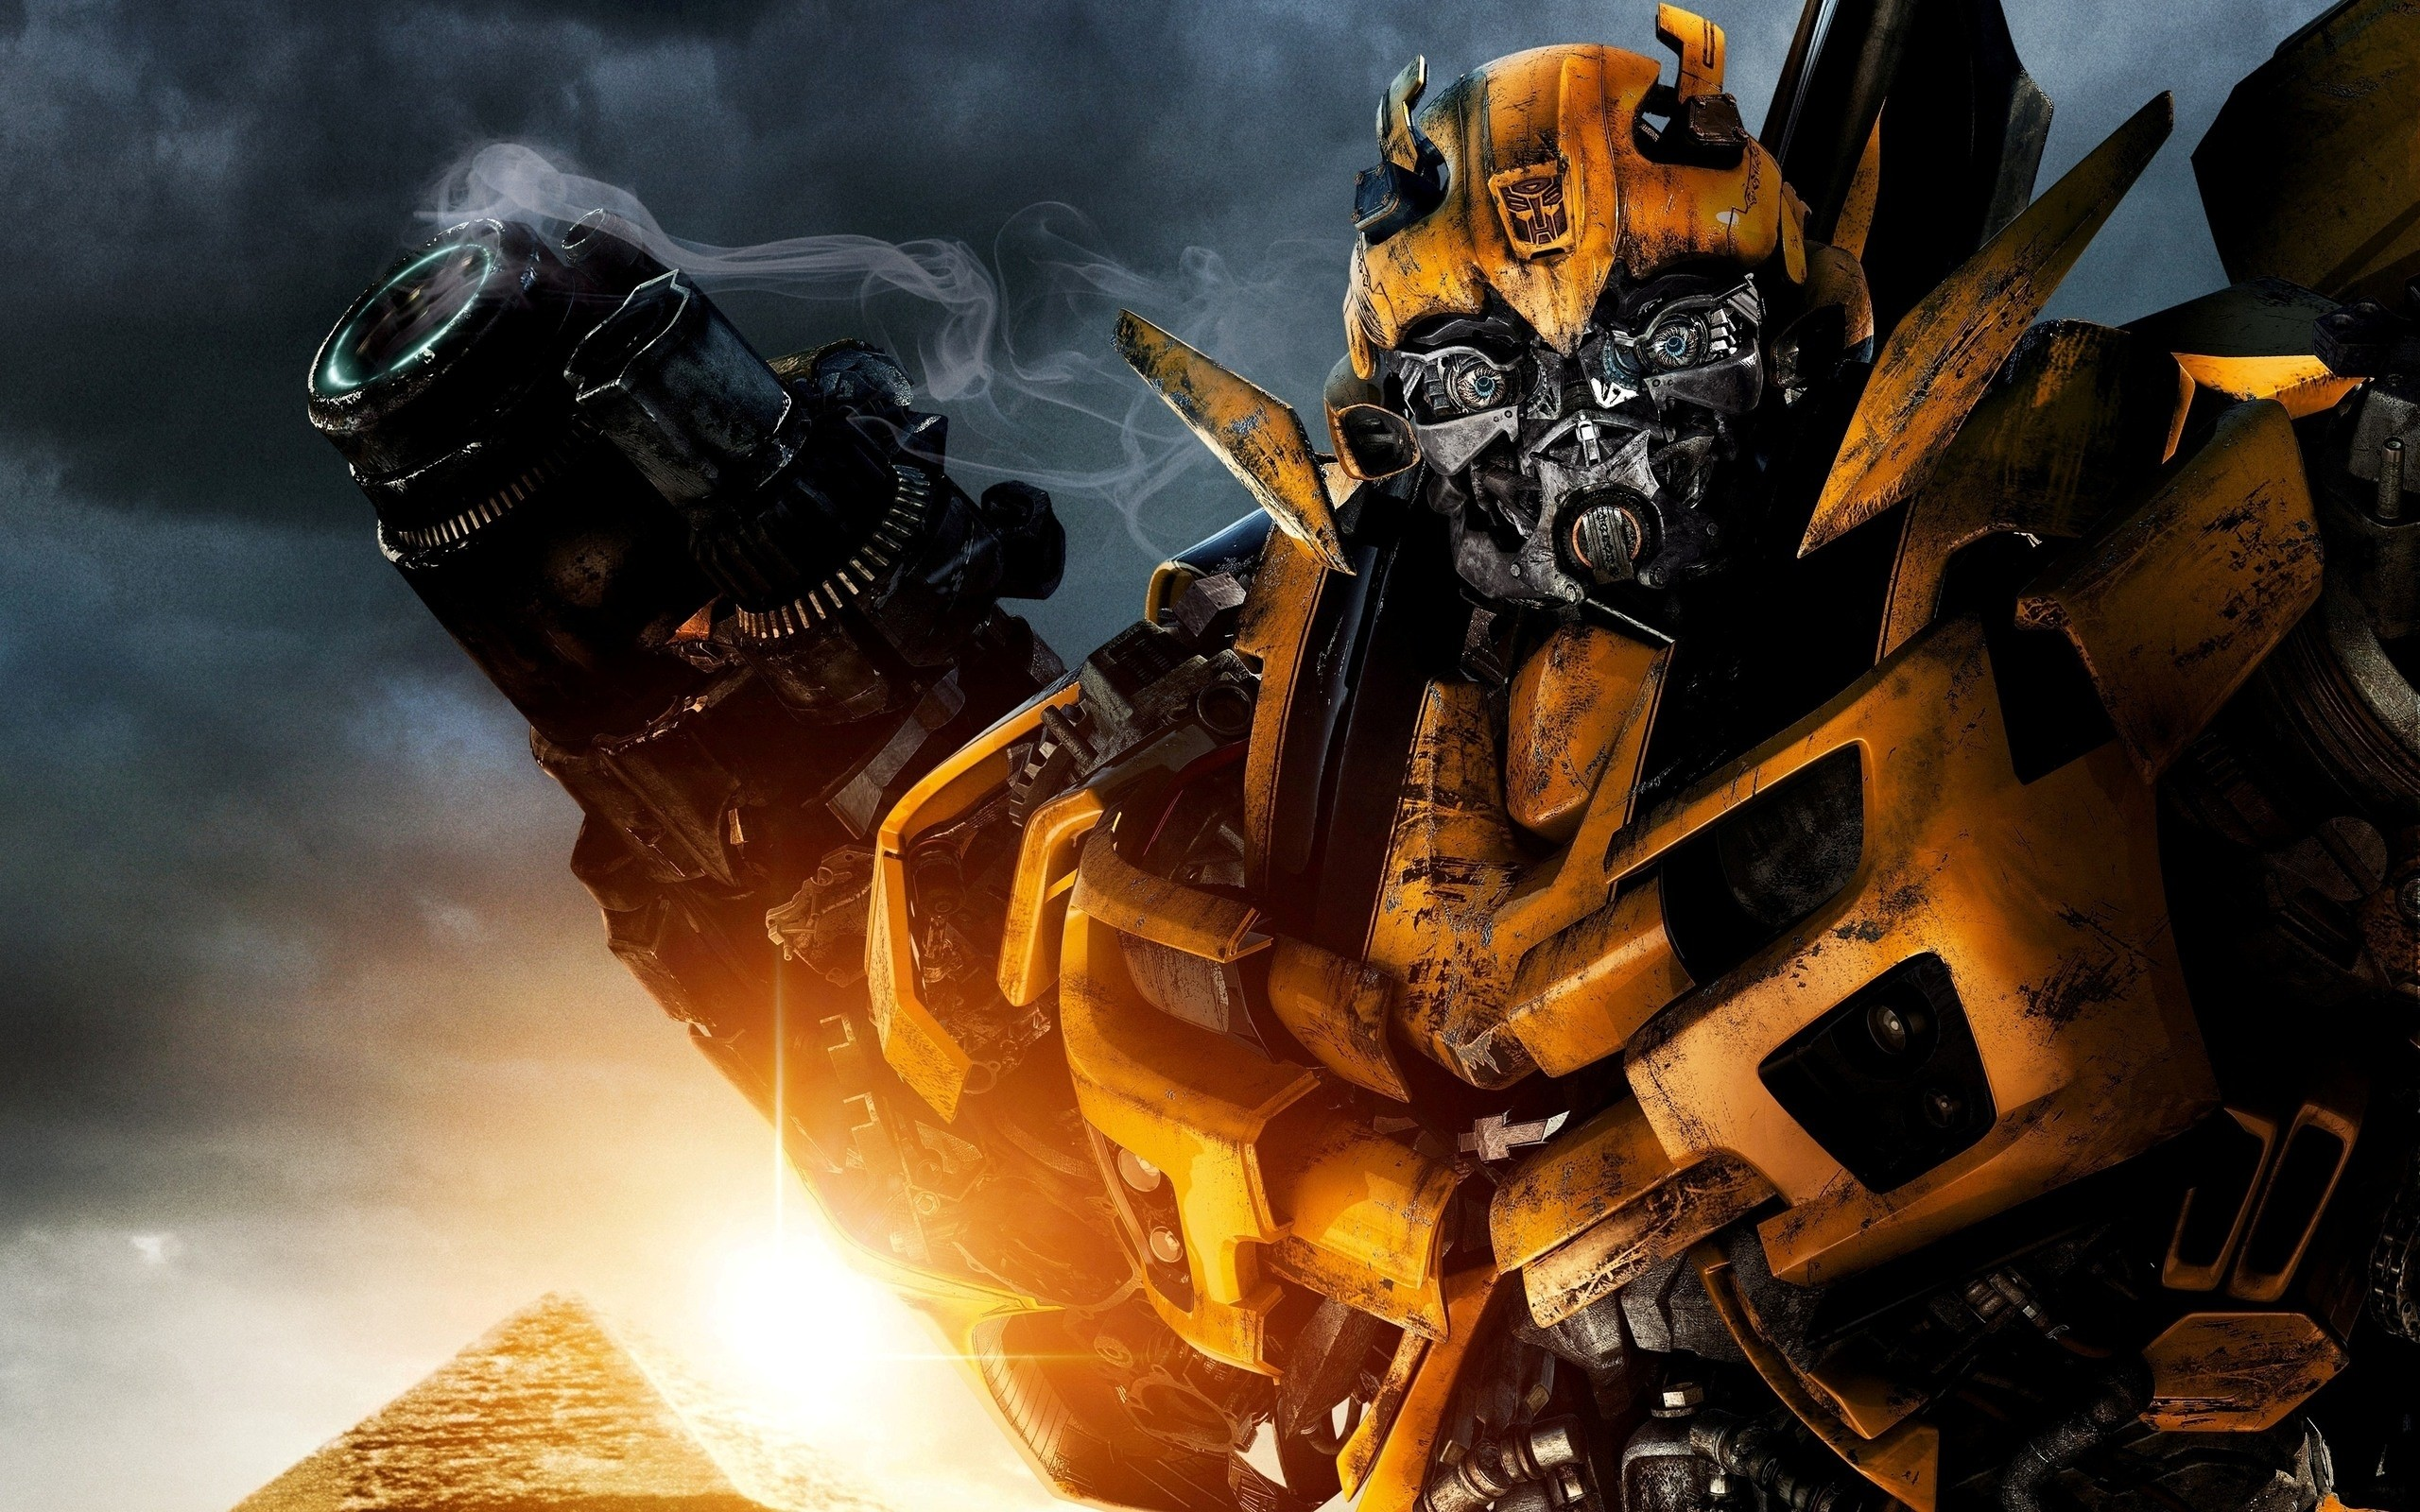 Transformers3-20032